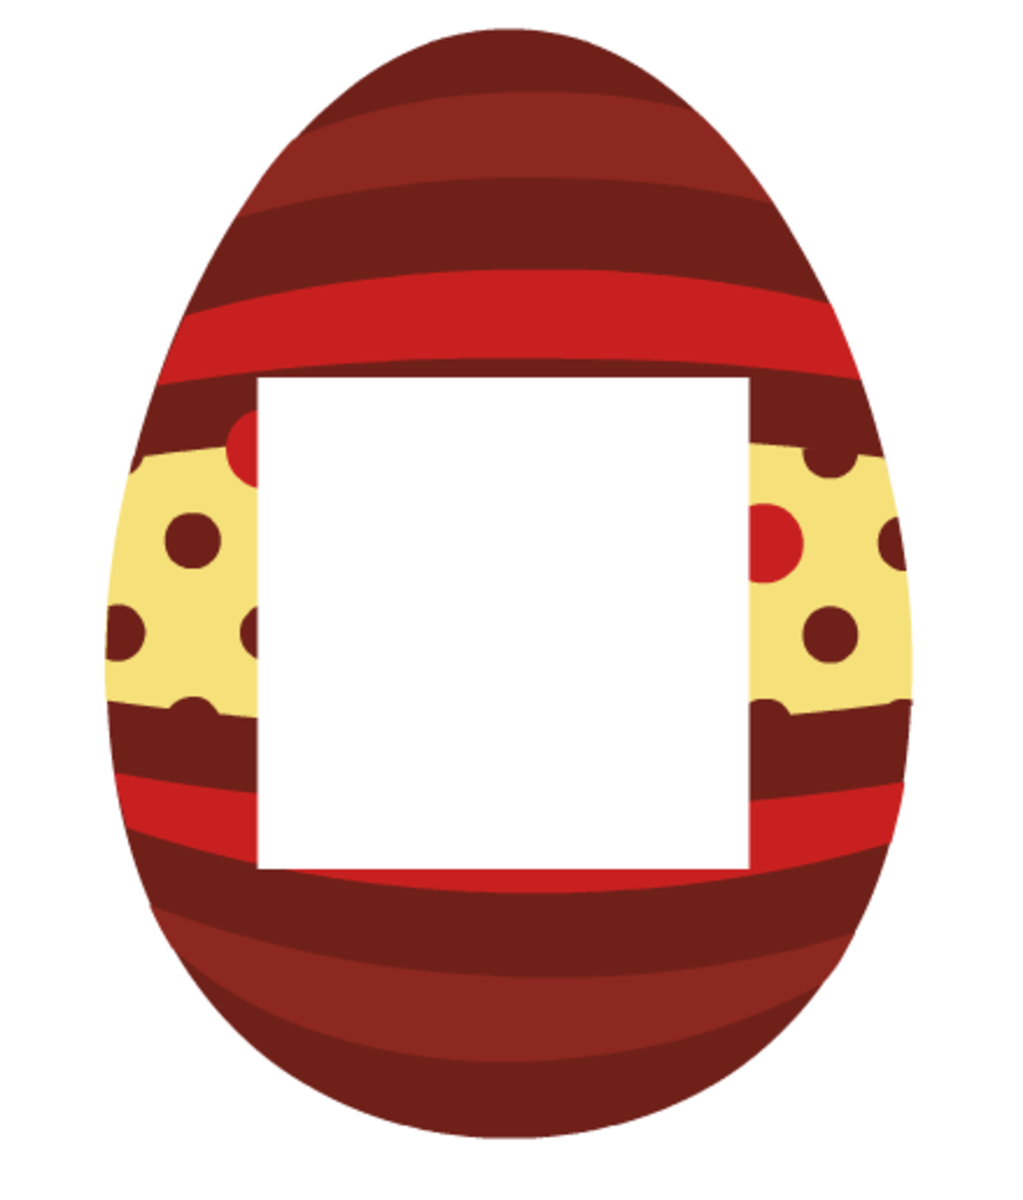 Easter scrapbook embellishments: Rust and red striped with rust dots Easter egg photo frame